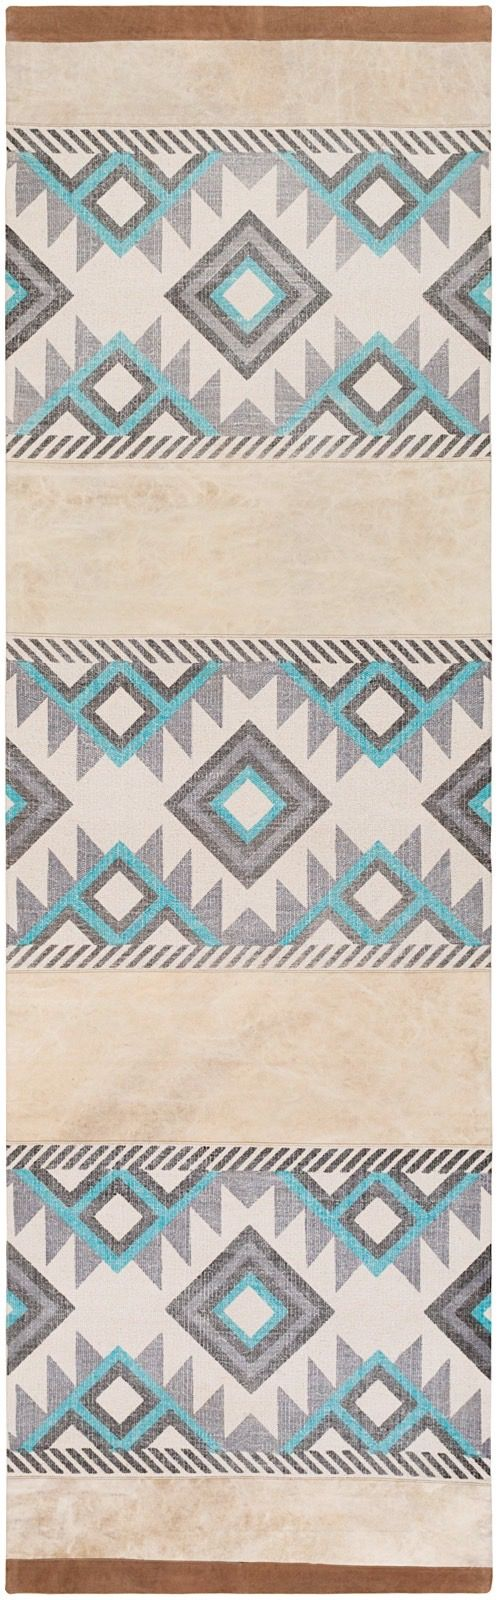 surya lasso southwestern/lodge area rug collection